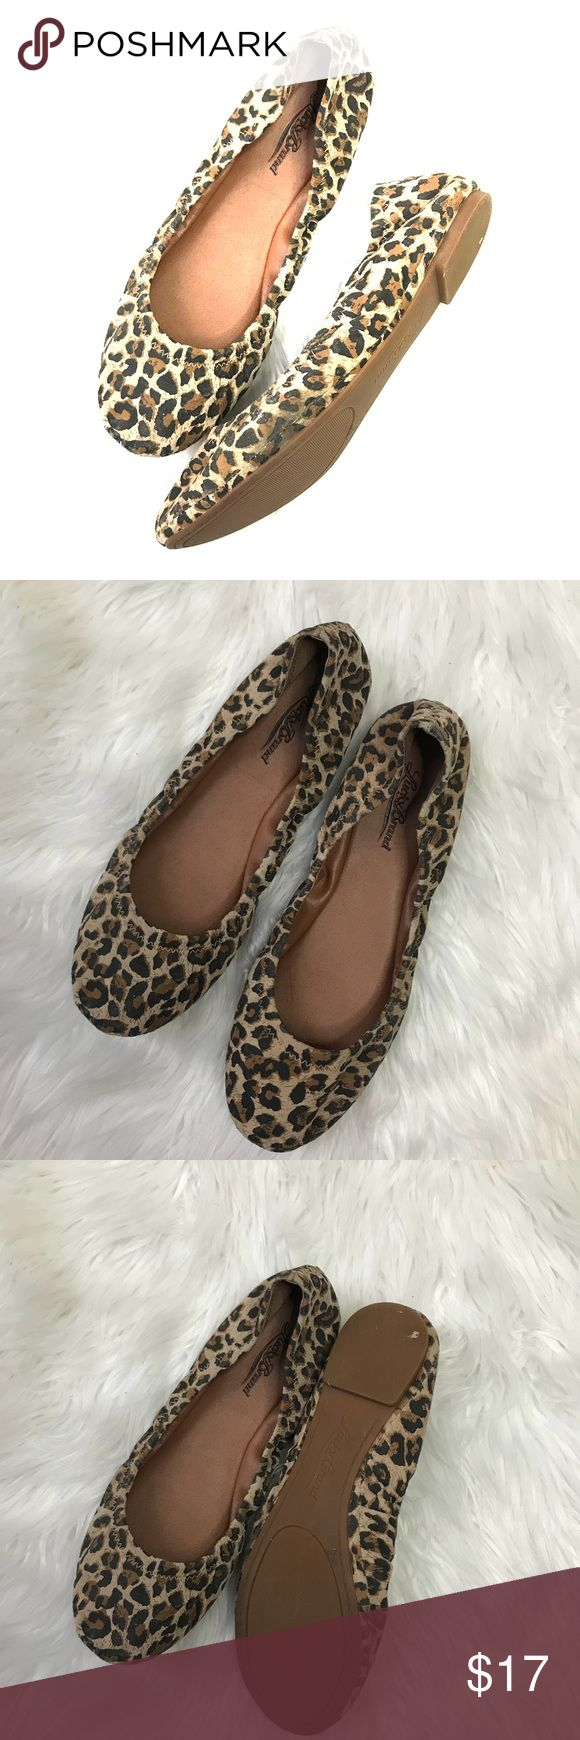 Lucky Brand Flats Size 7.5 Signs of wear see pictures, but great Condition overall Lucky Brand Shoes Flats & Loafers